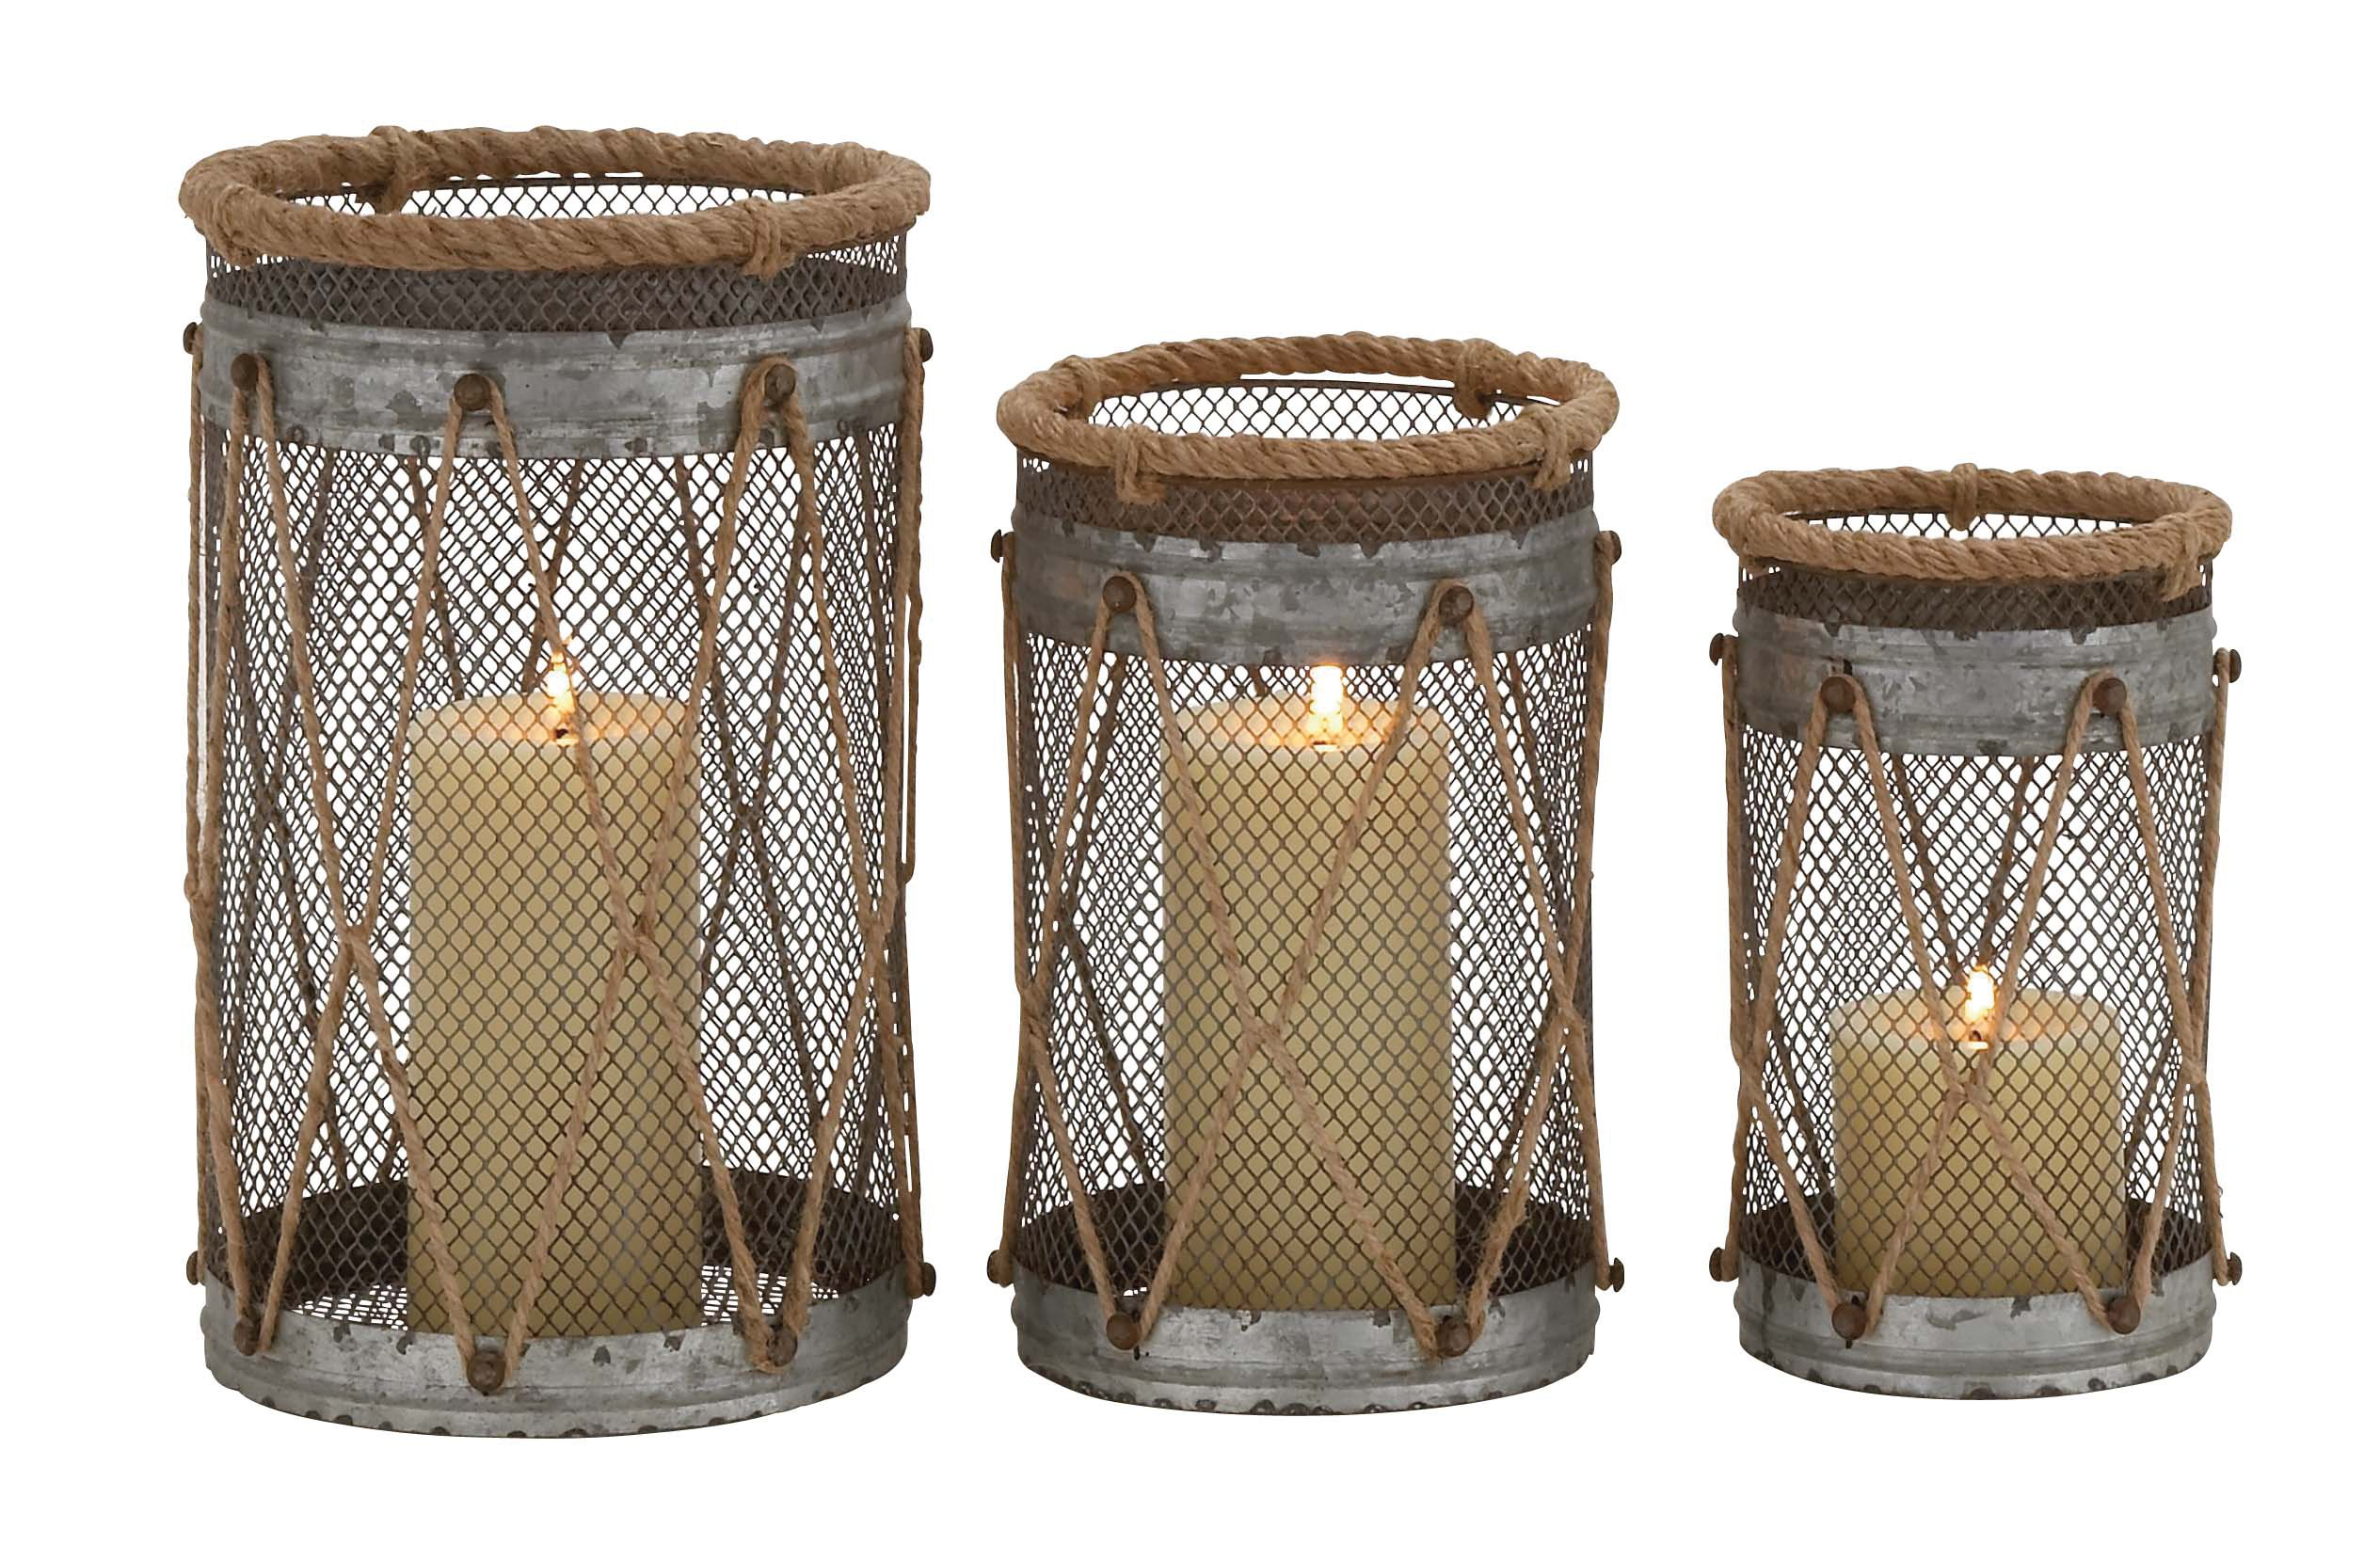 Deco 79 Metal Rope Candle Holder, 11 by 9 by 8-Inch, Set of 3